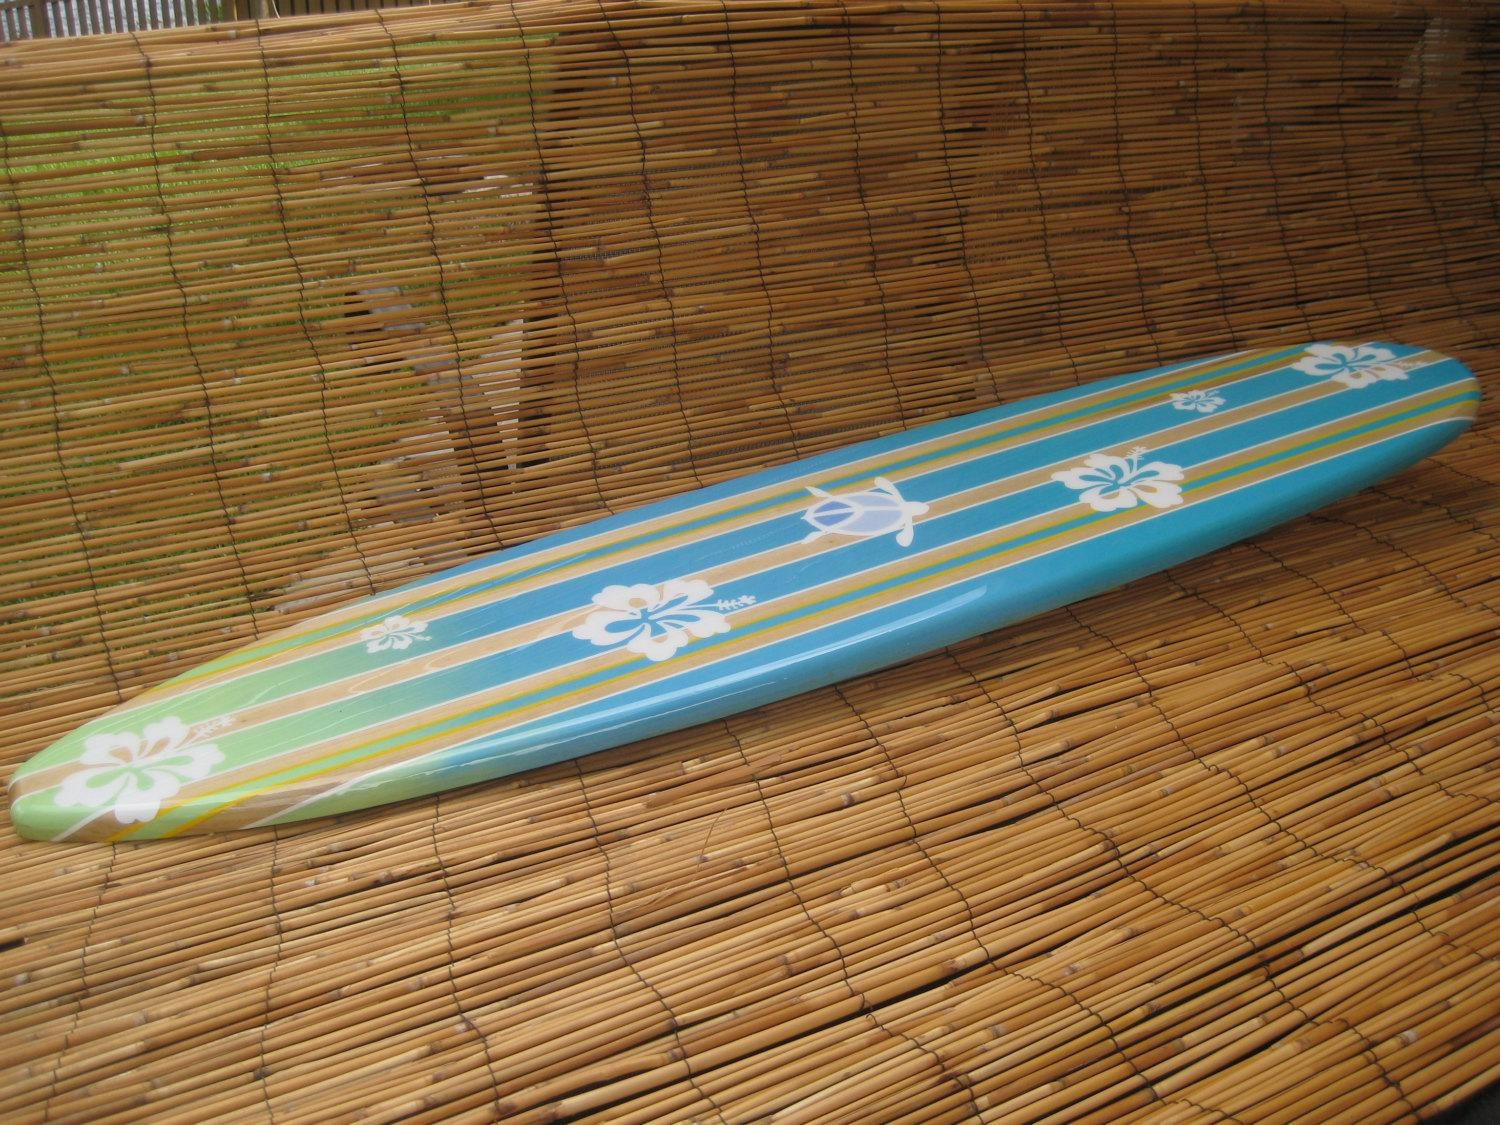 Decorative Wooden Surfboard Wall Art For A Hotel Restaurant For Decorative Surfboard Wall Art (Image 9 of 20)